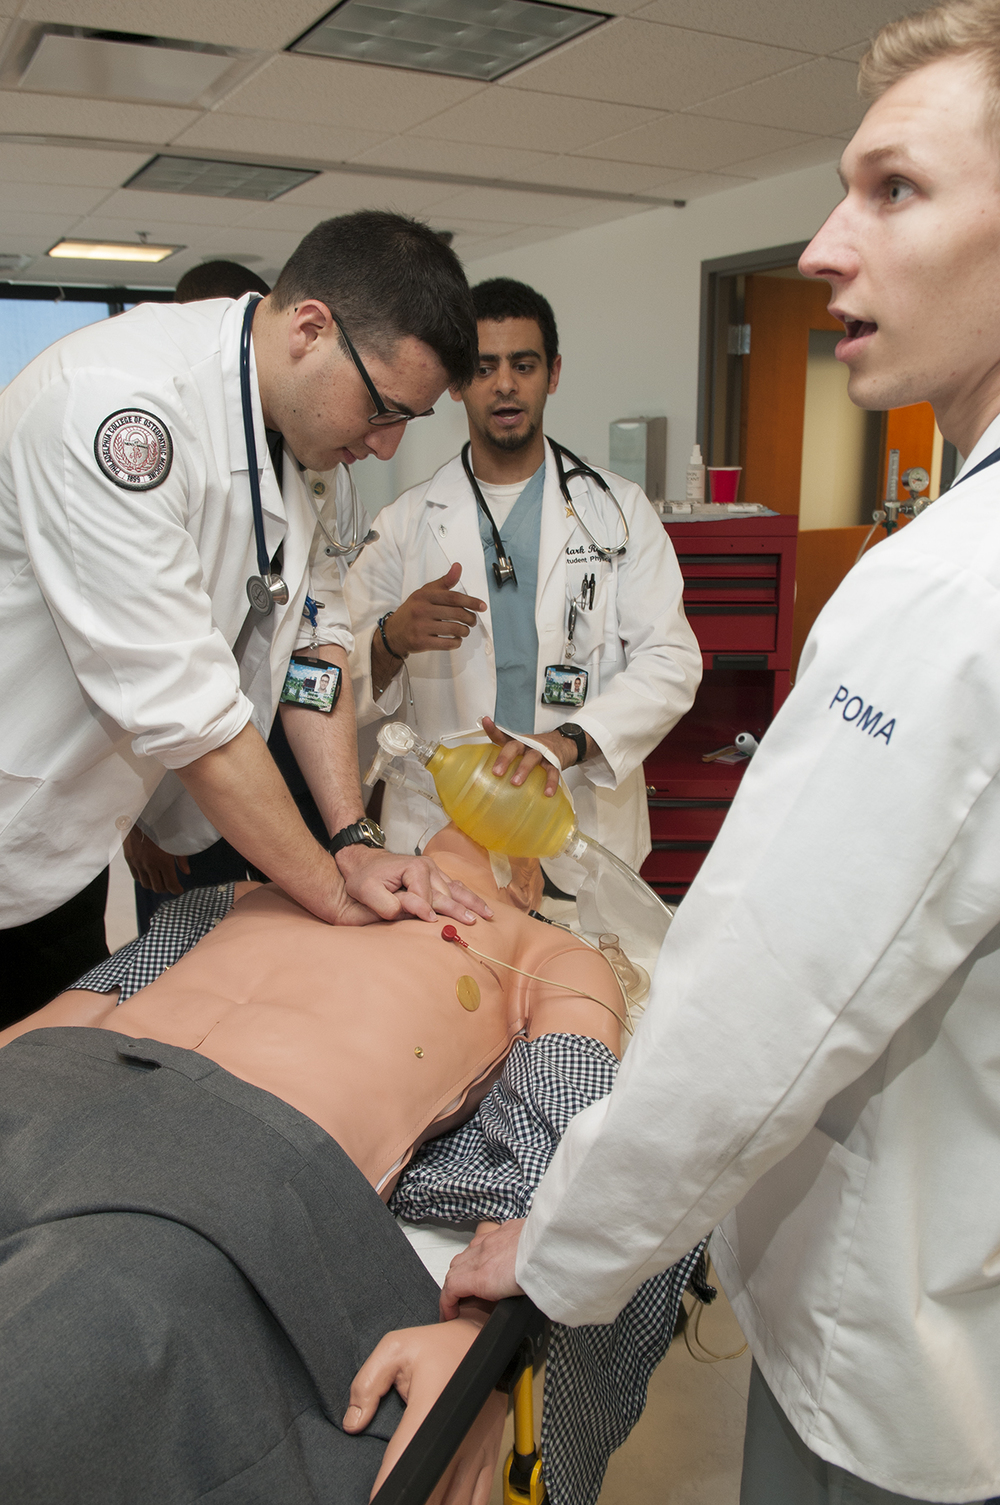 Sim Lab is dedicated to  translating preclinical knowledge into clinical acumen . Through the use of PCOM's CLAC on the 4th floor of Rowland Hall, the EMed Club is able to simulate emergency medicine cases with high fidelity. Sim lab is a very interactive experience and those who attend should expect to be brought into the process. The cases typically are designed to complement what is being learned in the classrooms of the 1st and 2nd year DO students, although  all PCOM students, regardless of program, year, or membership status in EMed Club are invited to attend . In other words, Sim Lab is about building a clinical knowledge base, learning how to think critically in front of a crashing patient and is open to everyone on campus!  For those who may be  interested in  submitting cases for sim lab , if you write a case it will be reviewed by current 3rd and 4th year students as well as EM residents and if accepted, you will be noted as a contributing author to the site. ( Yes, you can put this on your resume! )